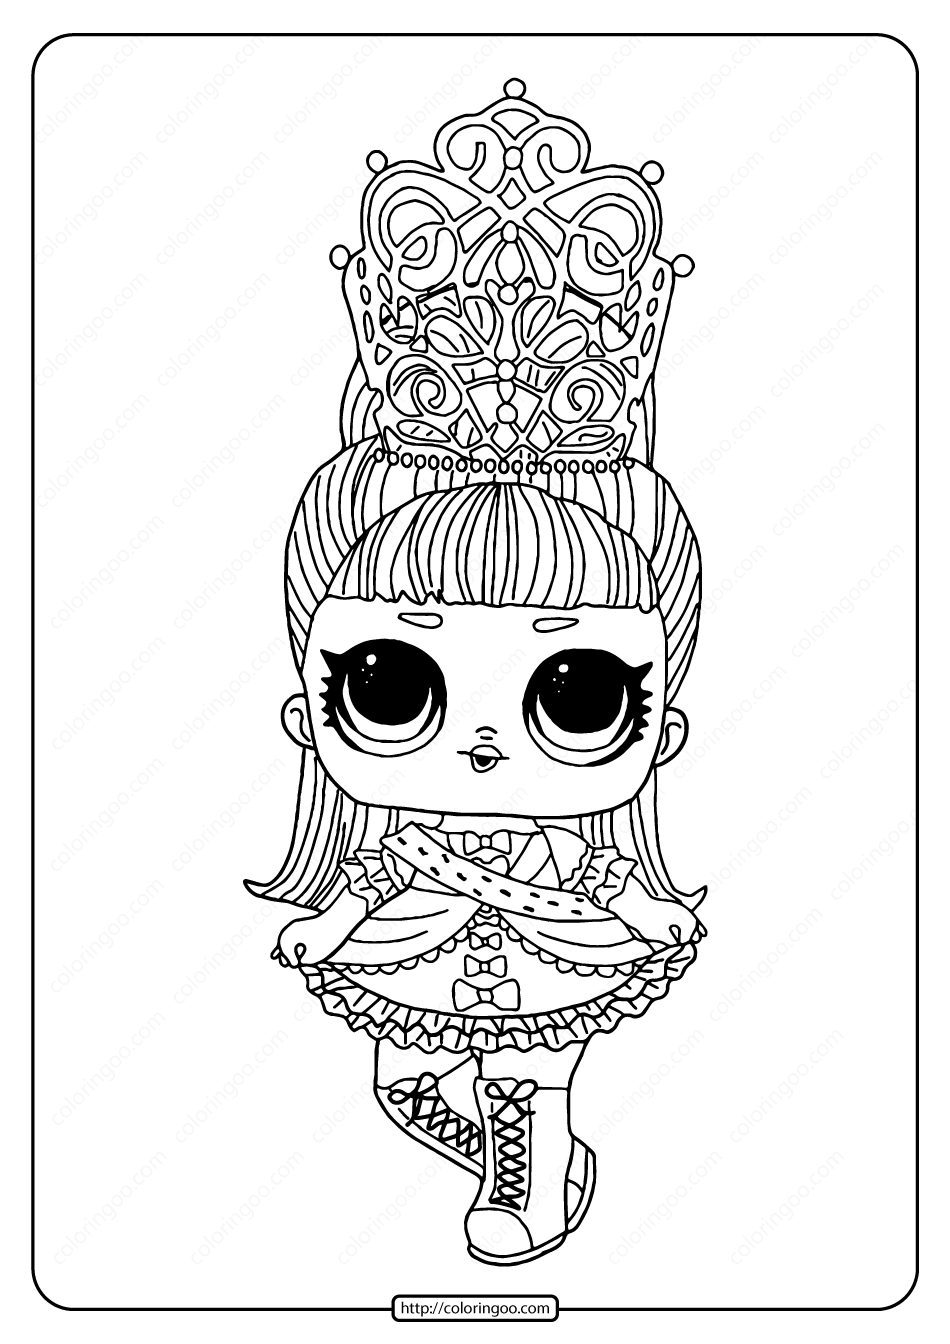 Lol Surprise Hairgoals Her Majesty Coloring Page Baby Coloring Pages Cool Coloring Pages Coloring Pages